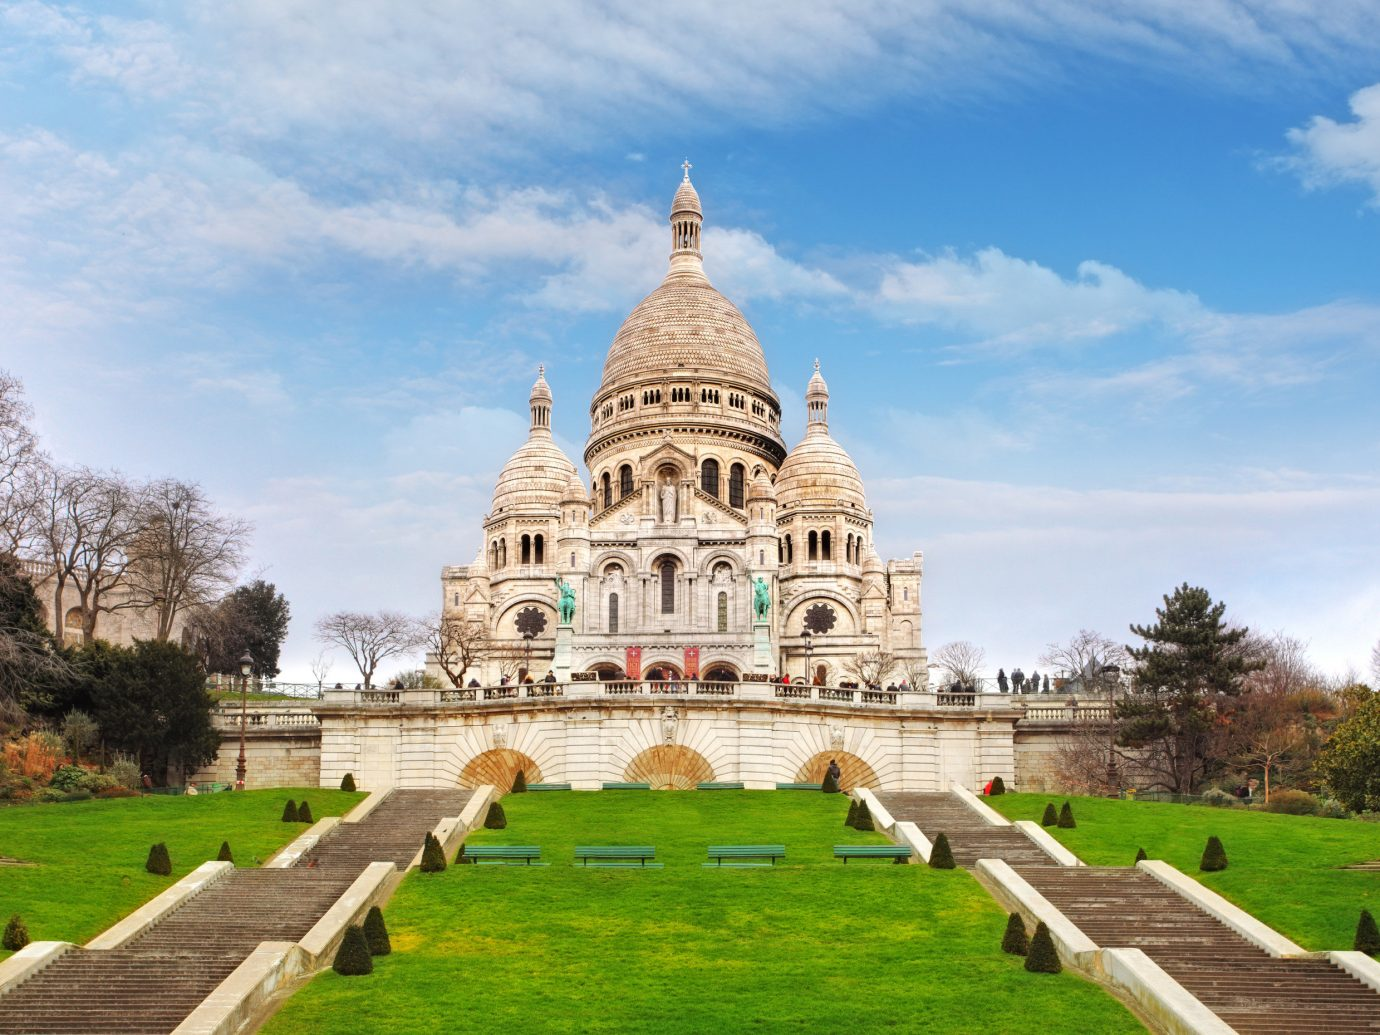 Trip Ideas grass outdoor sky tree building historic site landmark green grassy stately home château estate place of worship palace tourism Church park monastery cathedral Garden old stone lush